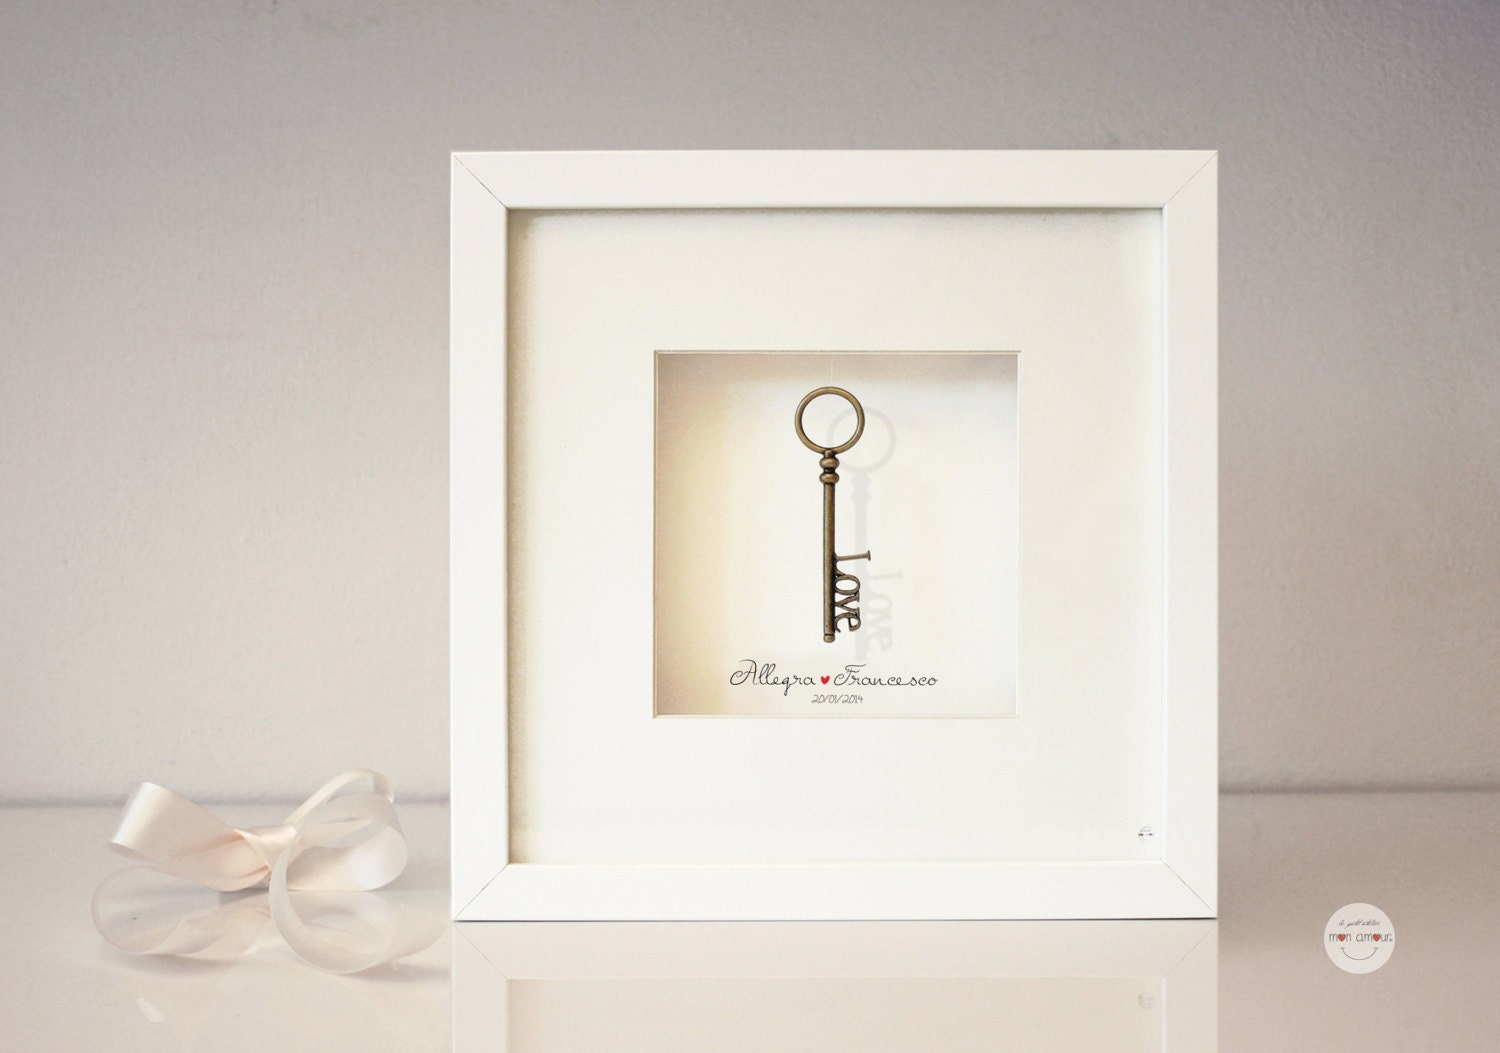 Personalised Wedding Gift Art : Personalized Wedding Gift Art Framed Gifts Bronze Anniversary